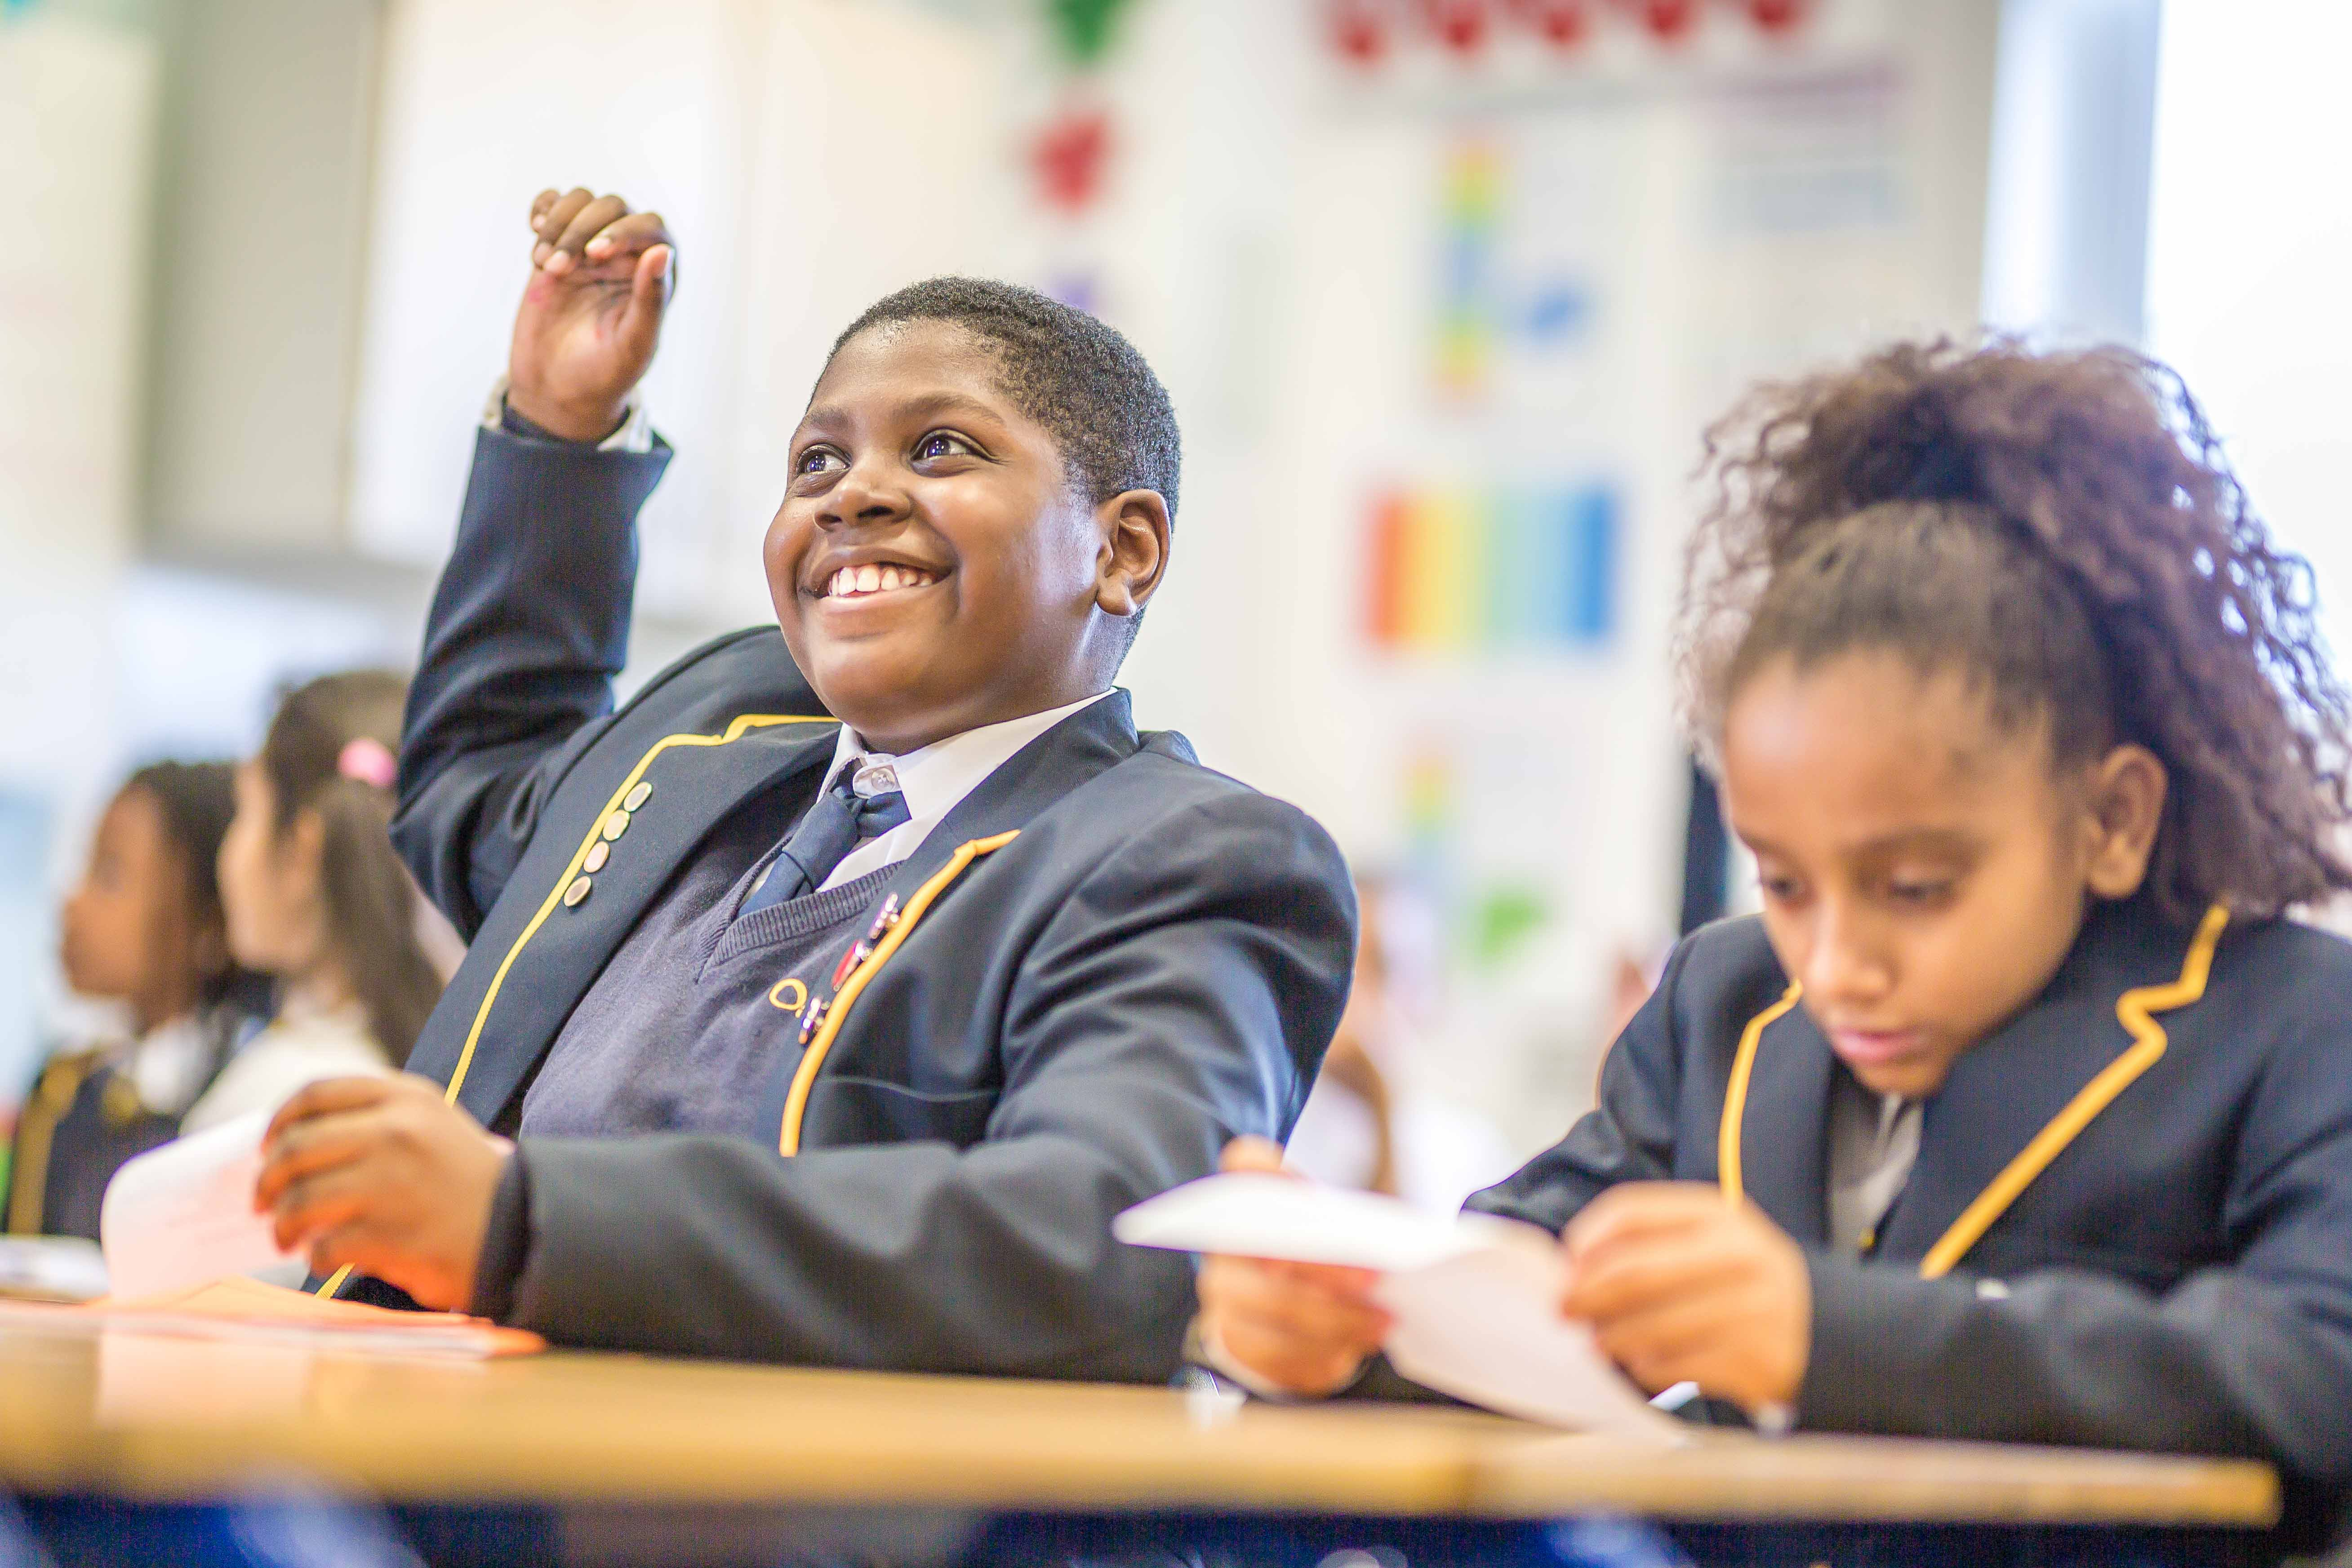 Accelerating progress - Oasis Academy Ryelands achieves National Quality Mark for English & Maths